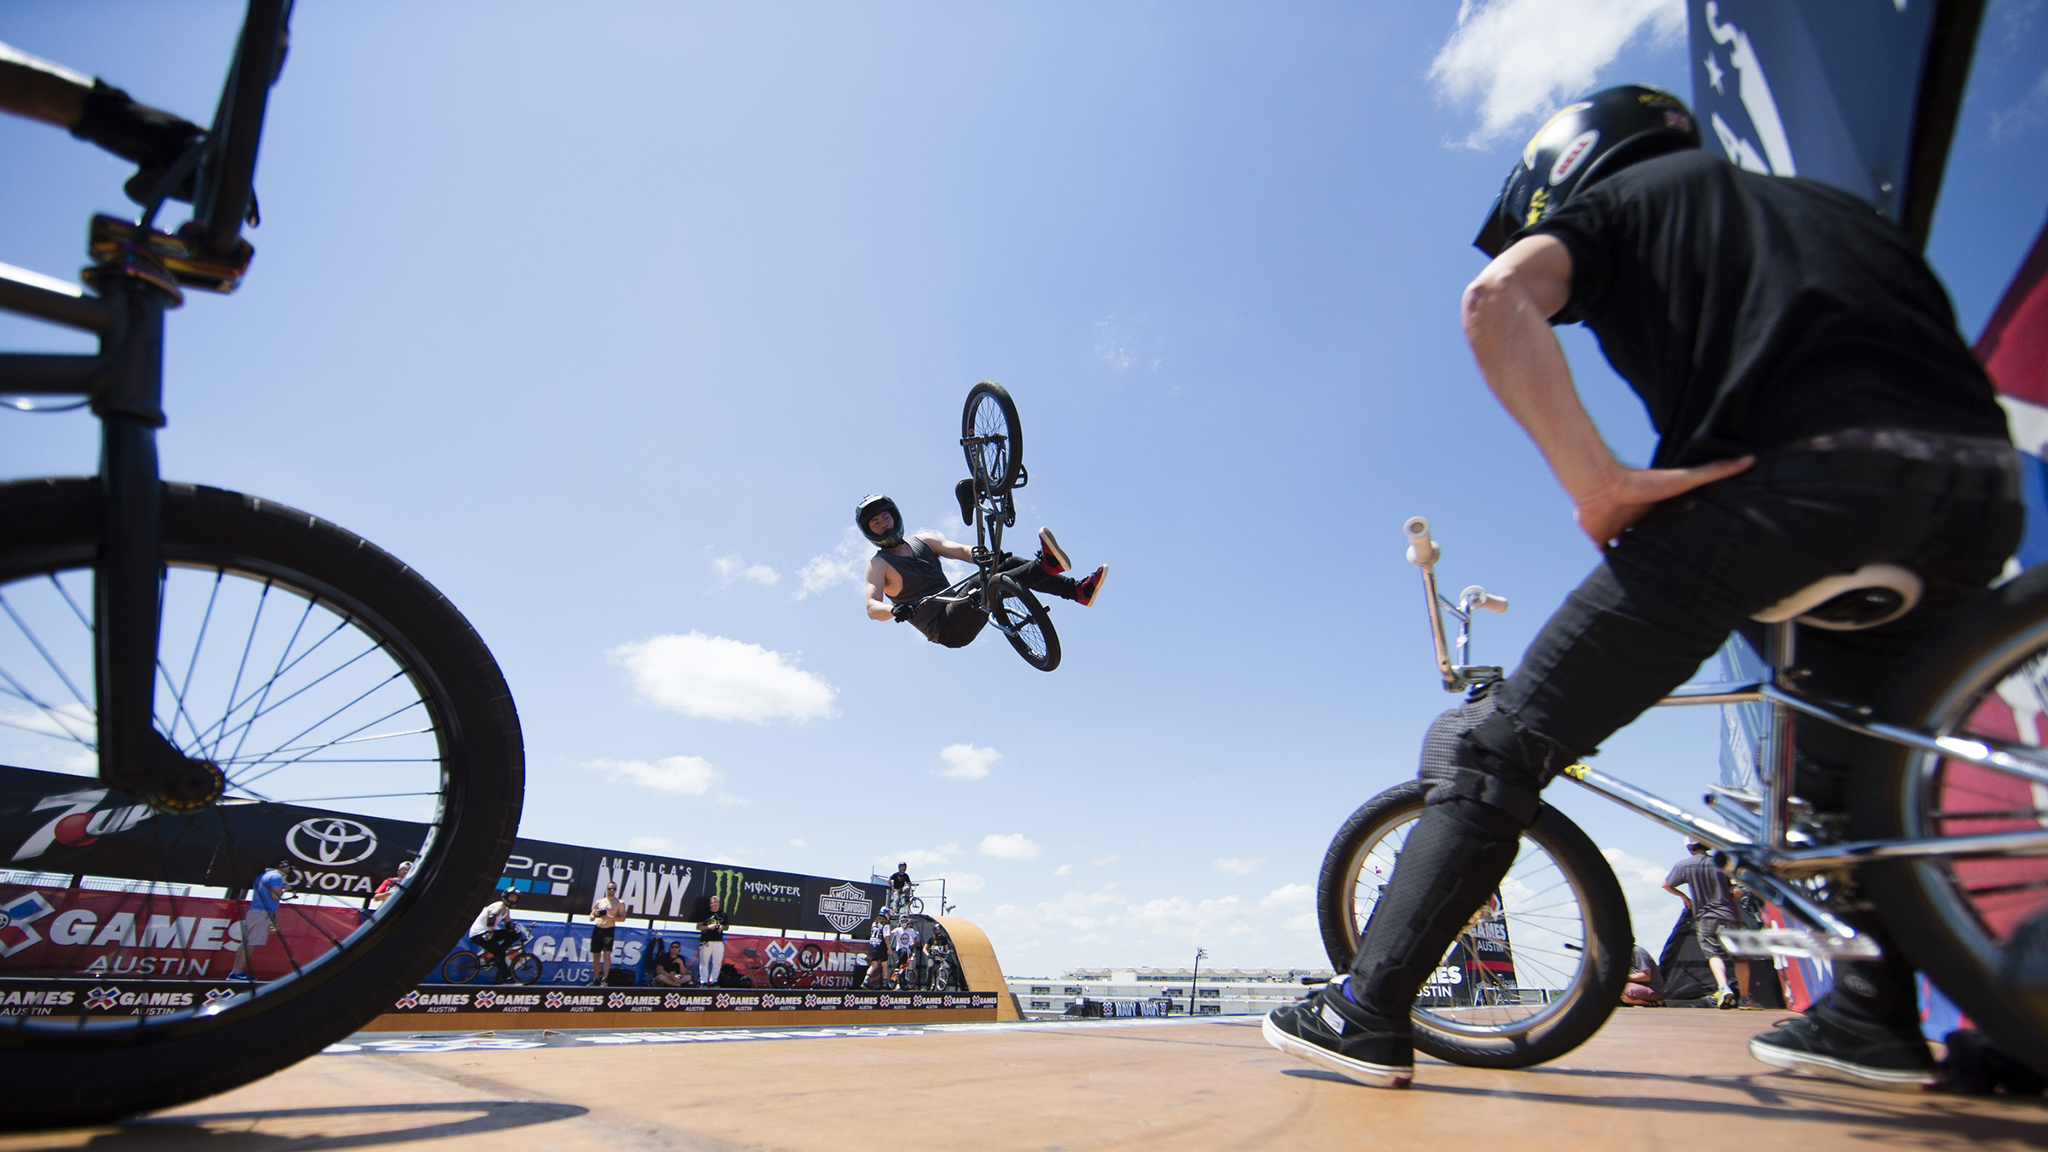 Everyone in BMX likes to say it's not about competition, but the fact is I always come in looking to do my best, says BMX Vert gold medalist Vince Byron.